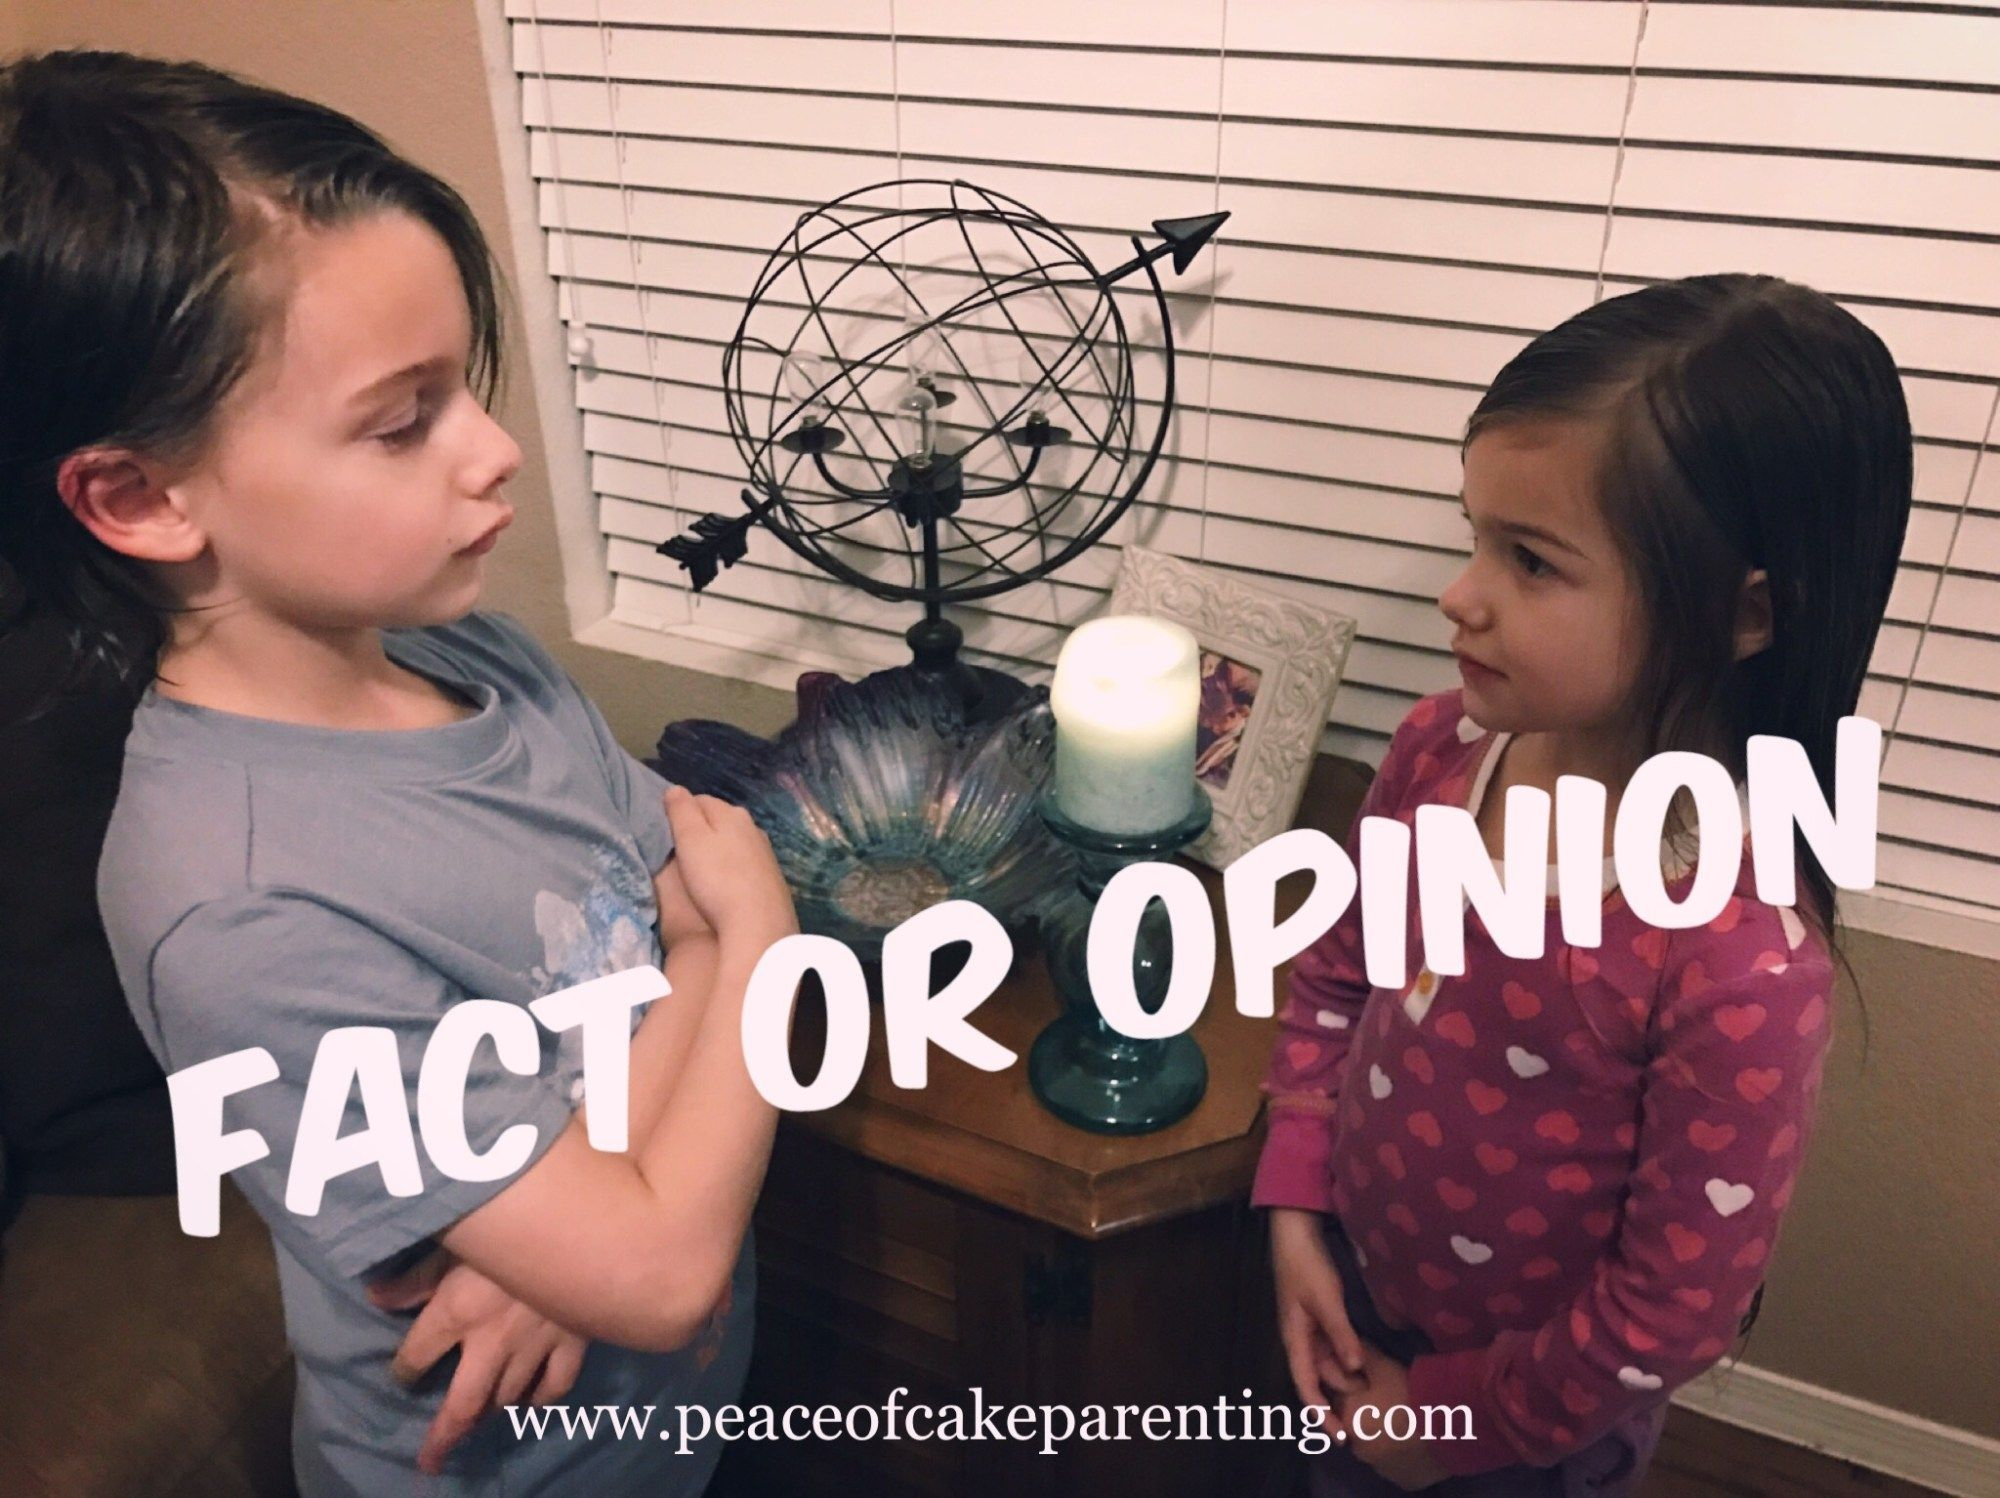 Have you ever wondered how to stop the minimal sibling bickering such as: he said my doll was dumb, she said her car was cooler than mine, he said I'm not doing a good job coloring? Look no f…